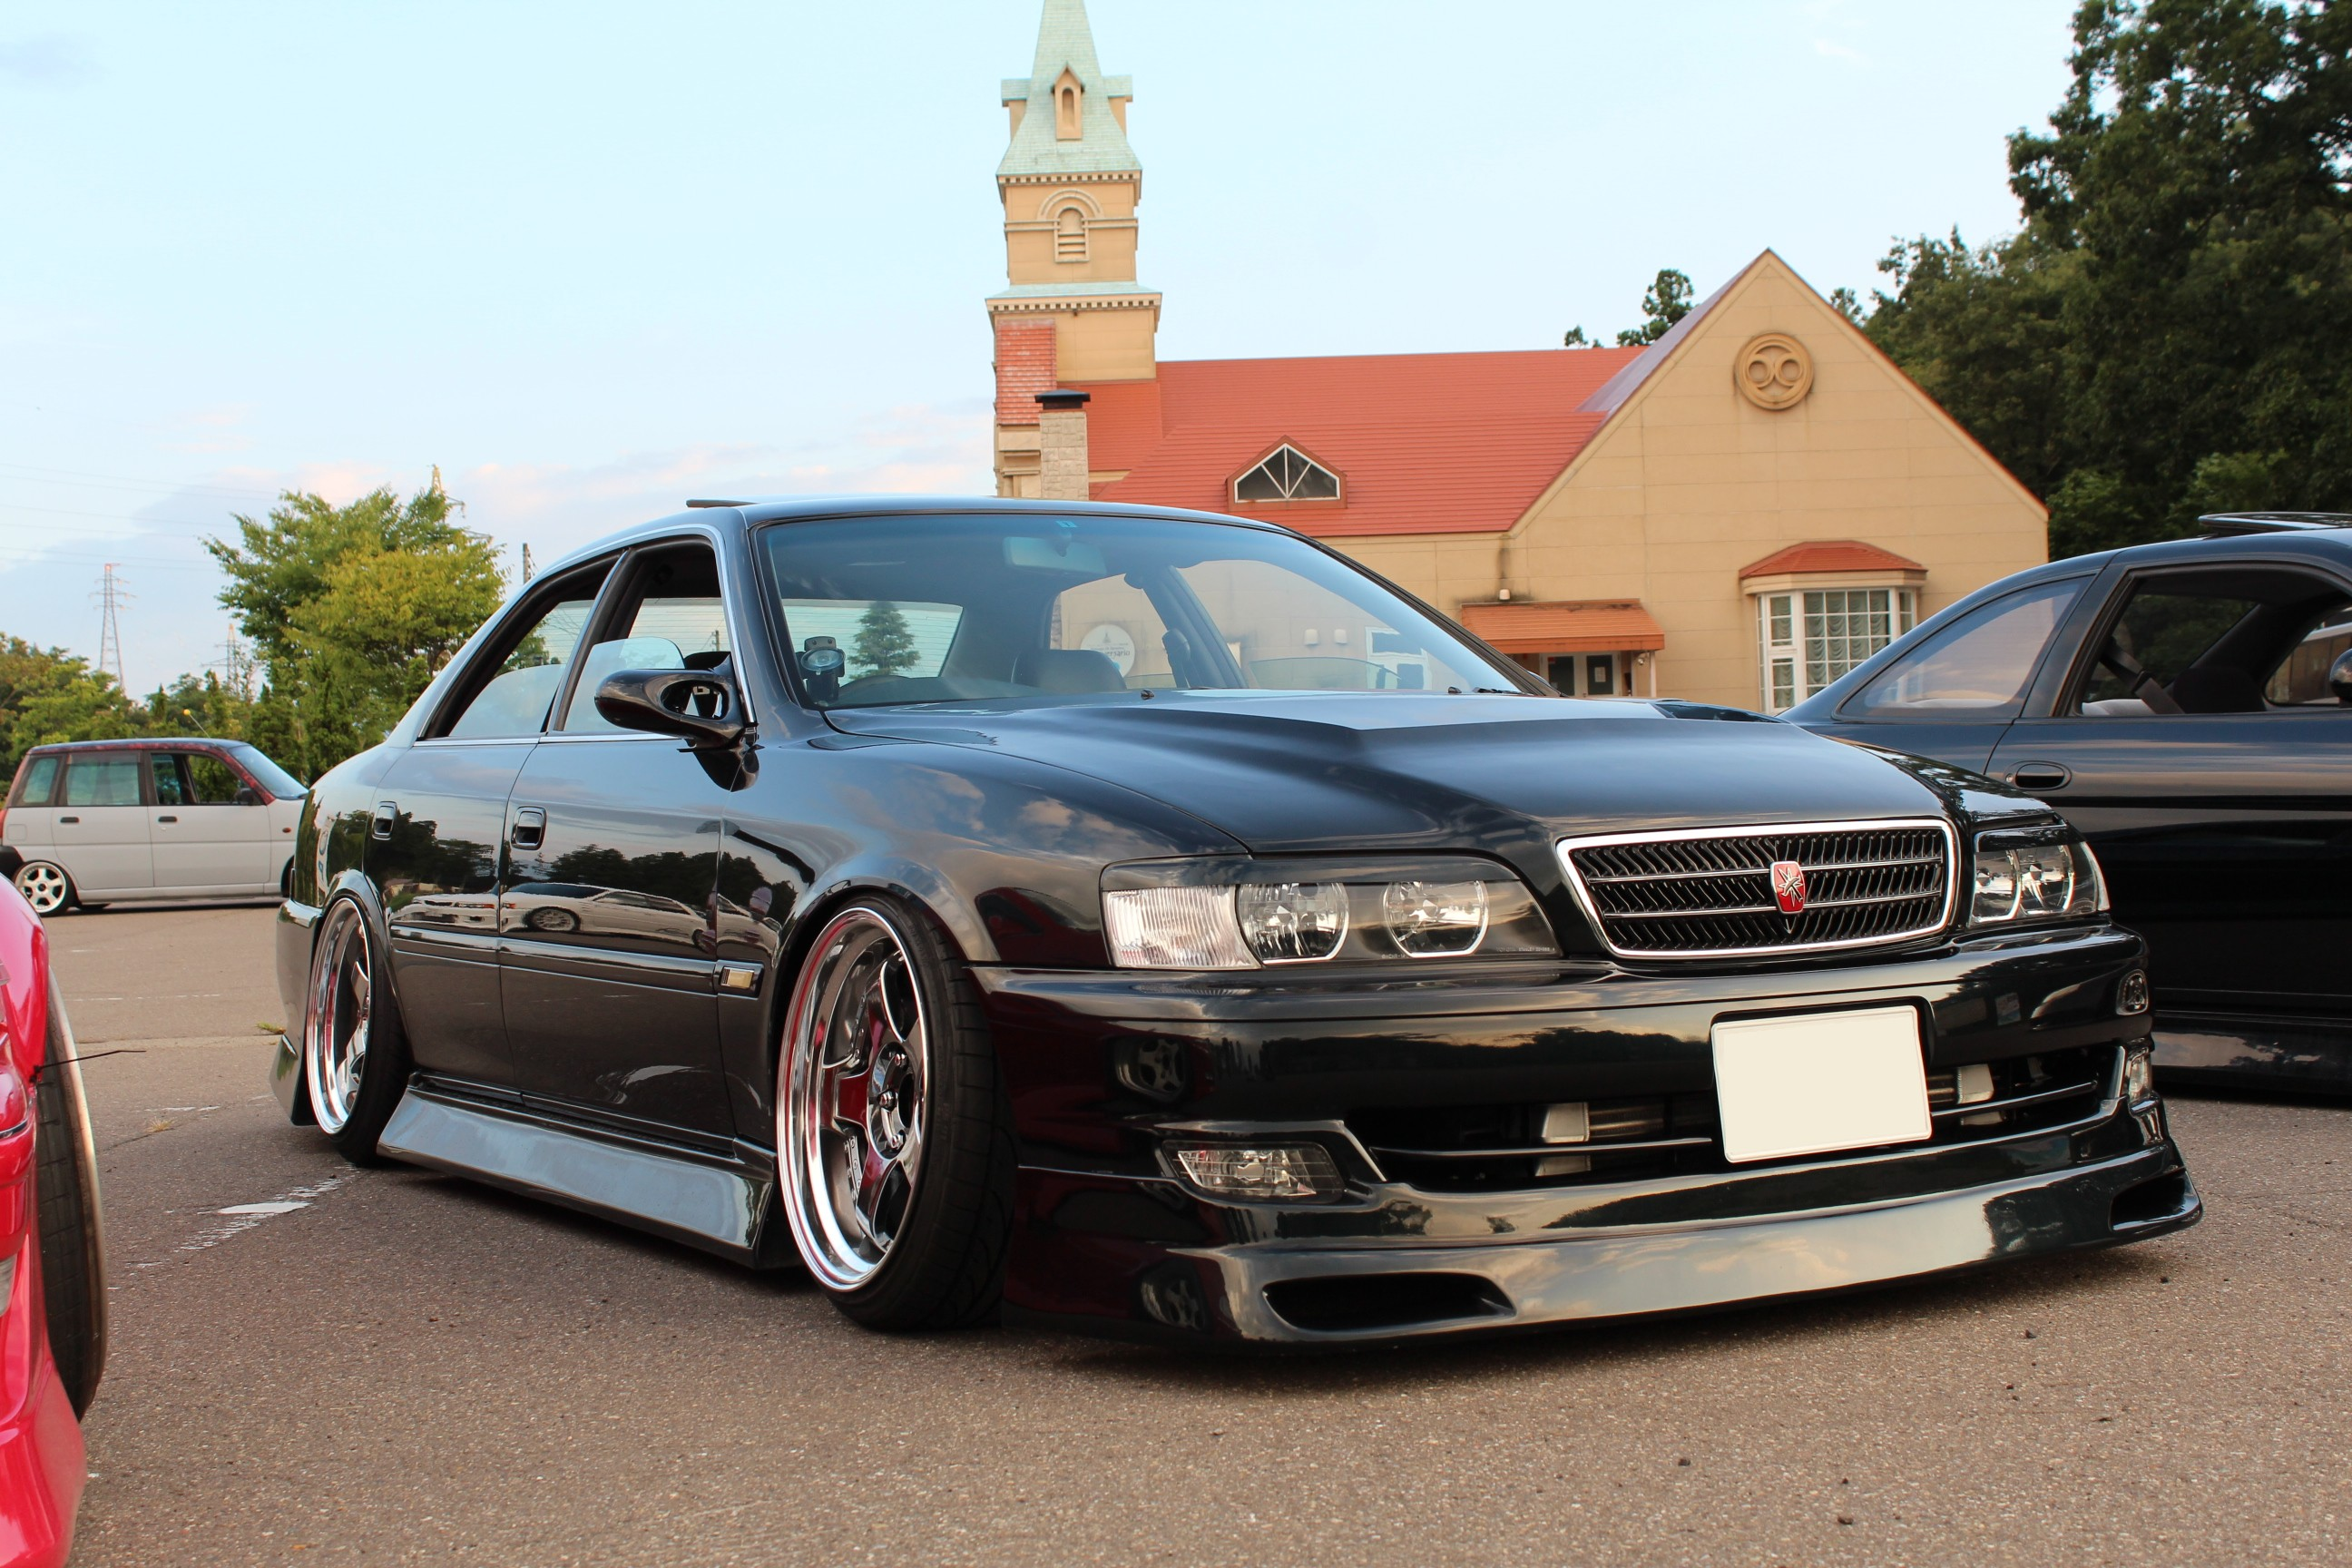 Charming Toyota Chaser (zx 90) 1995 Images #15